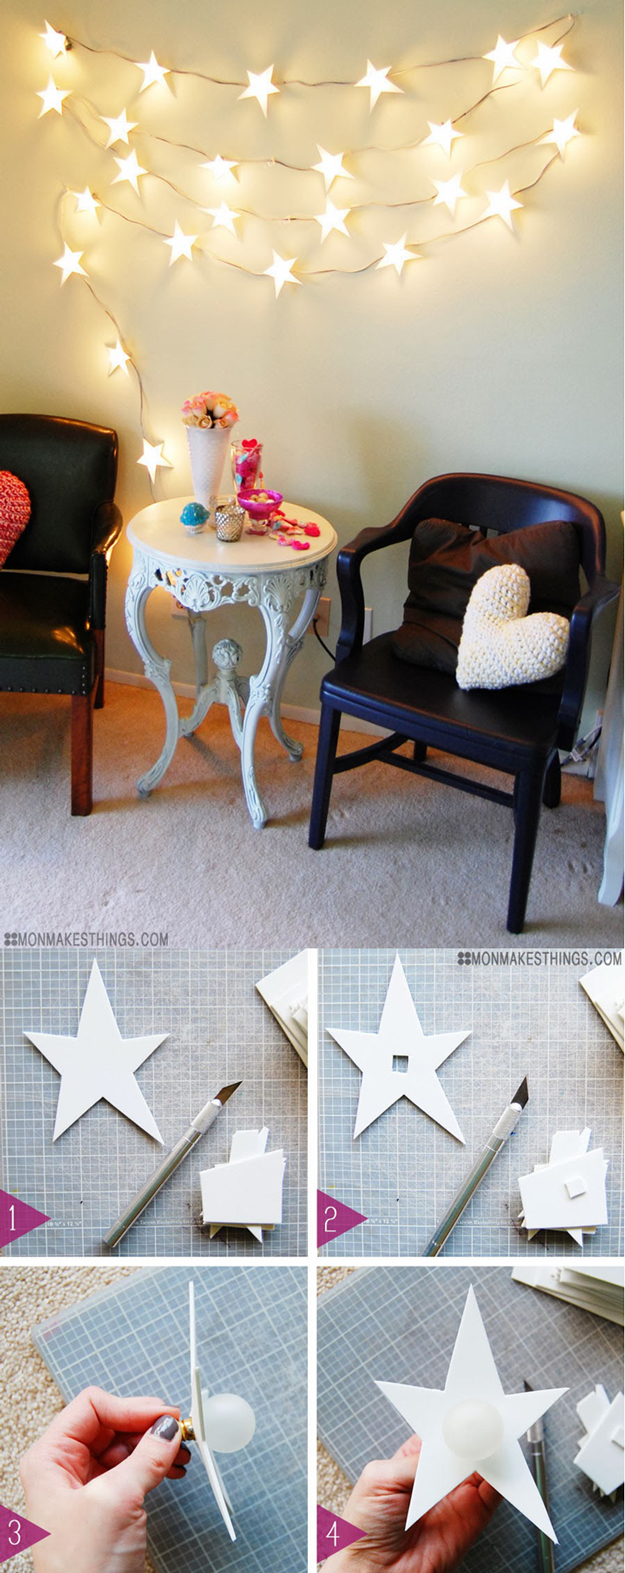 33 Awesome DIY String Light Ideas String Light DIY ideas for Cool Home Decor   Star Garland Christmas Light  DIY are Fun